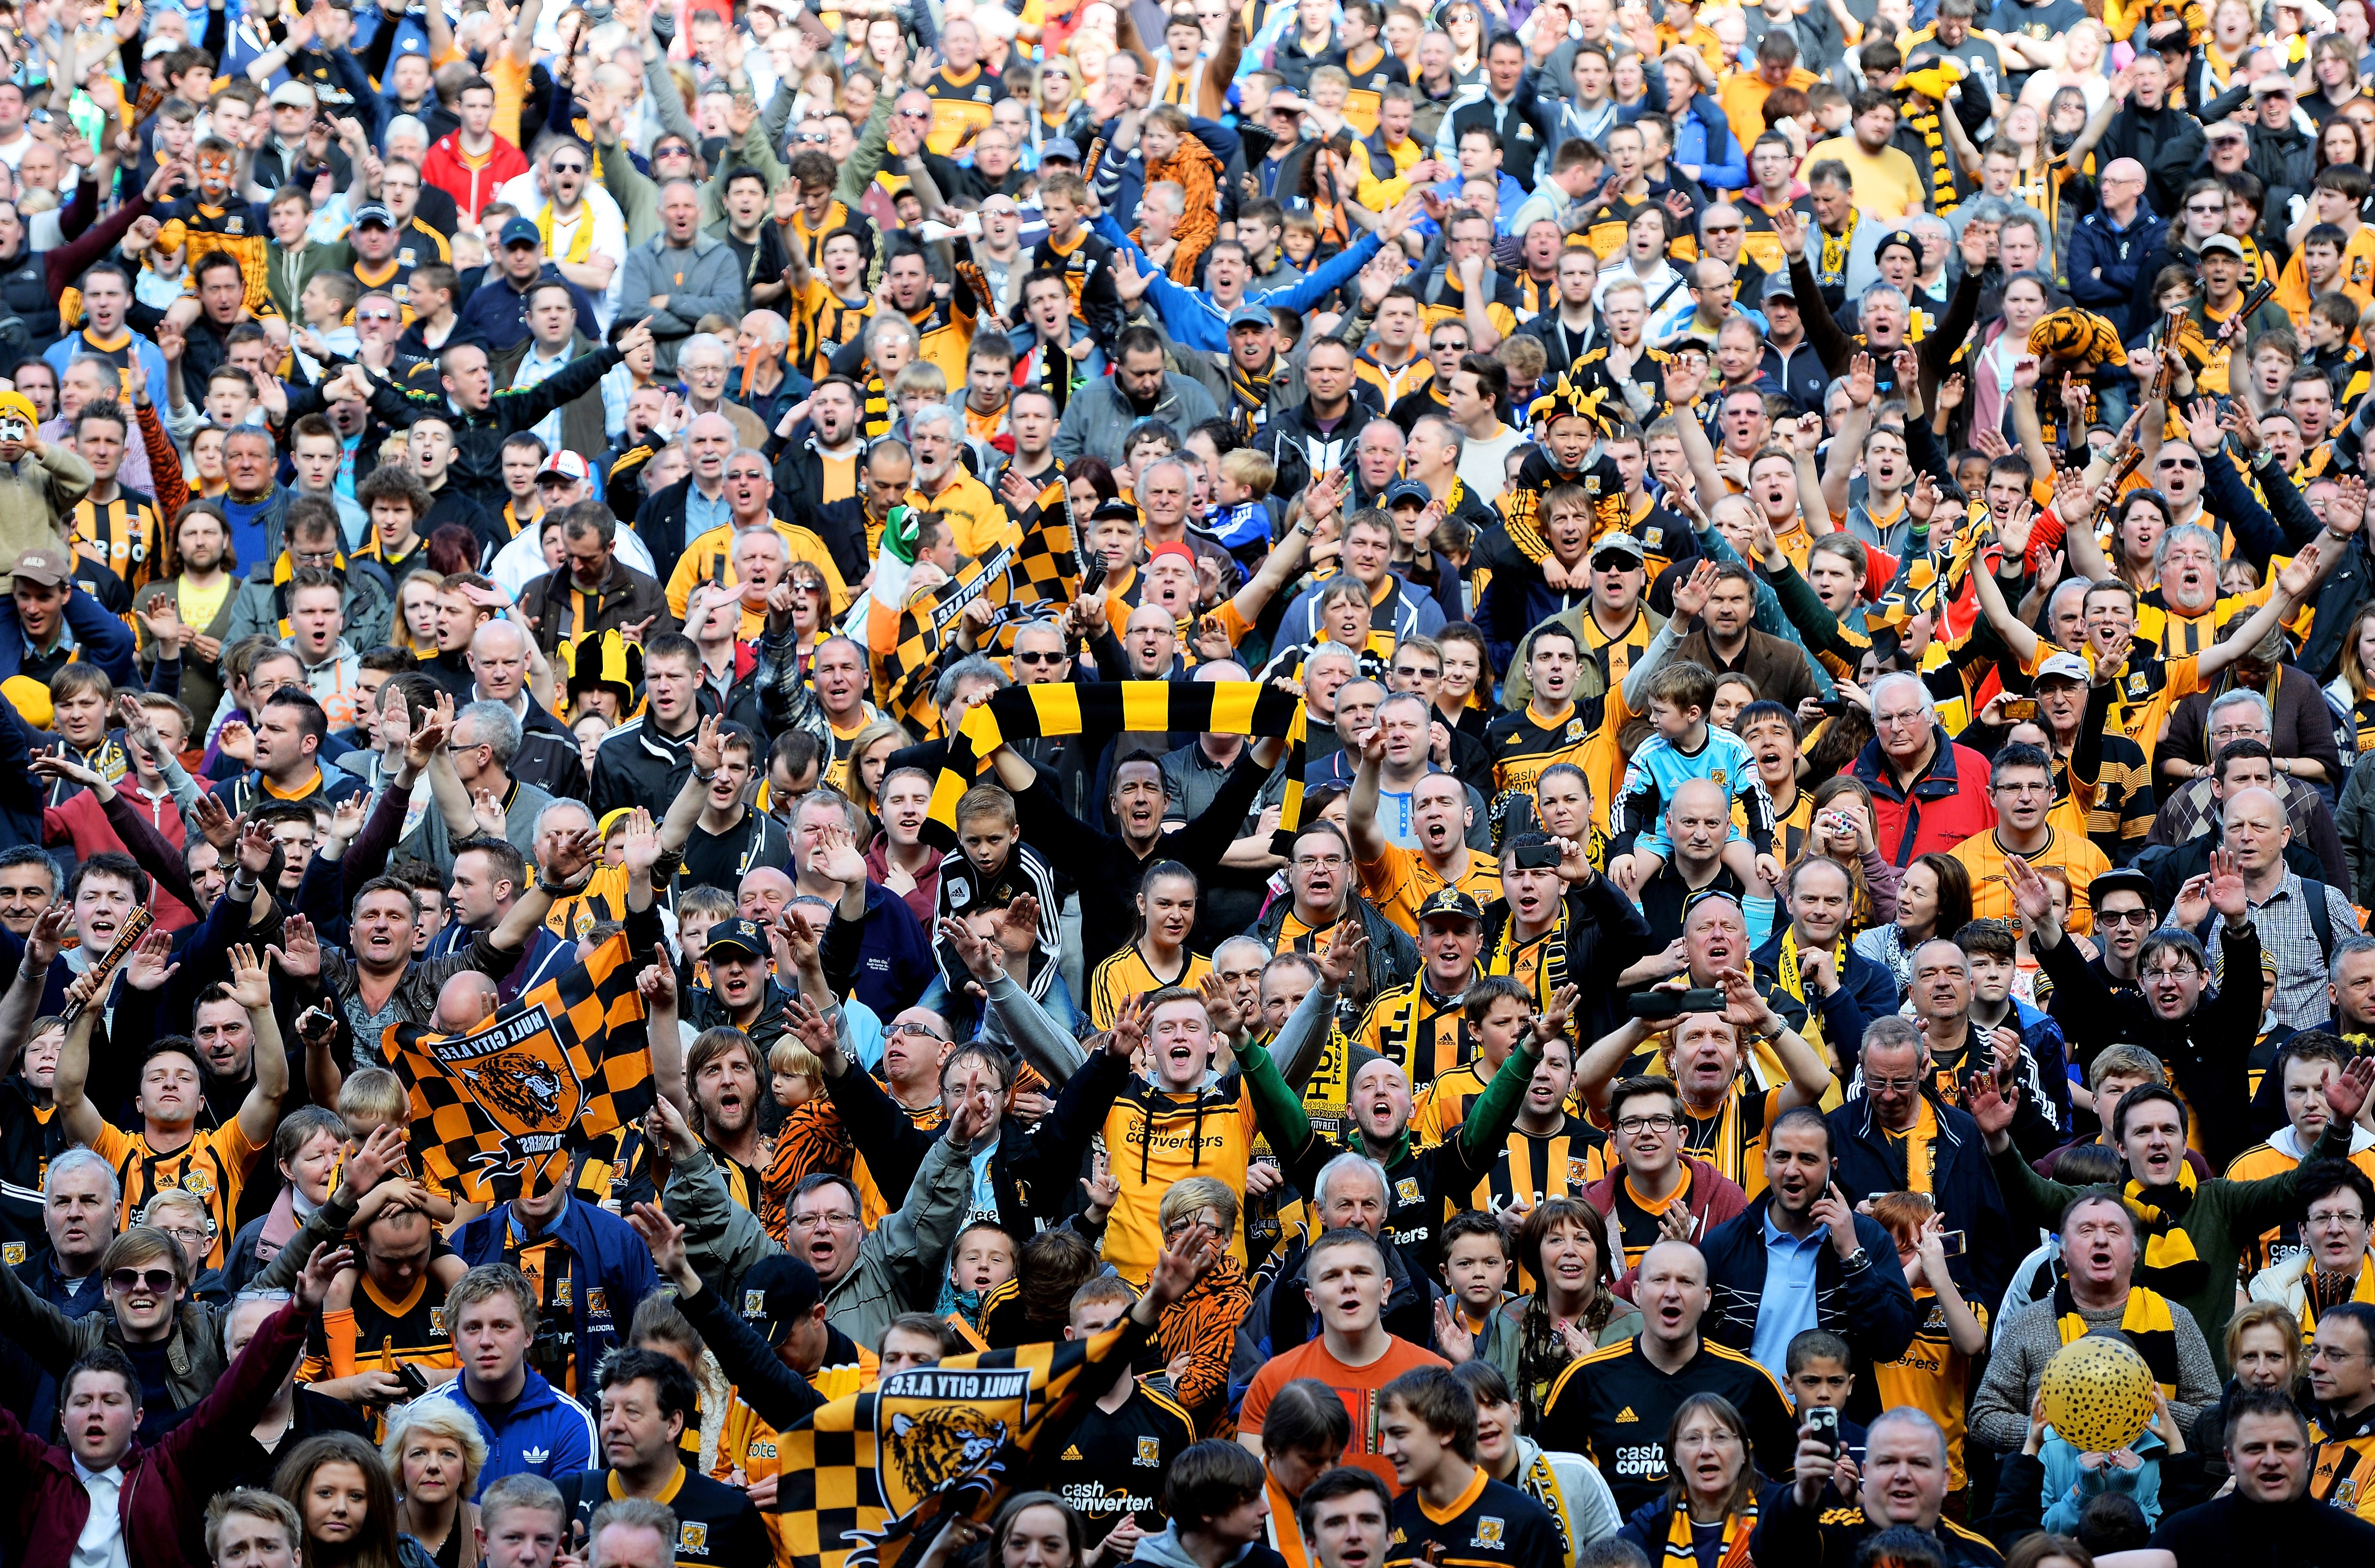 Hull fans run onto the pitch to celebrate their team's promotion to the Premier League (Picture: Getty)